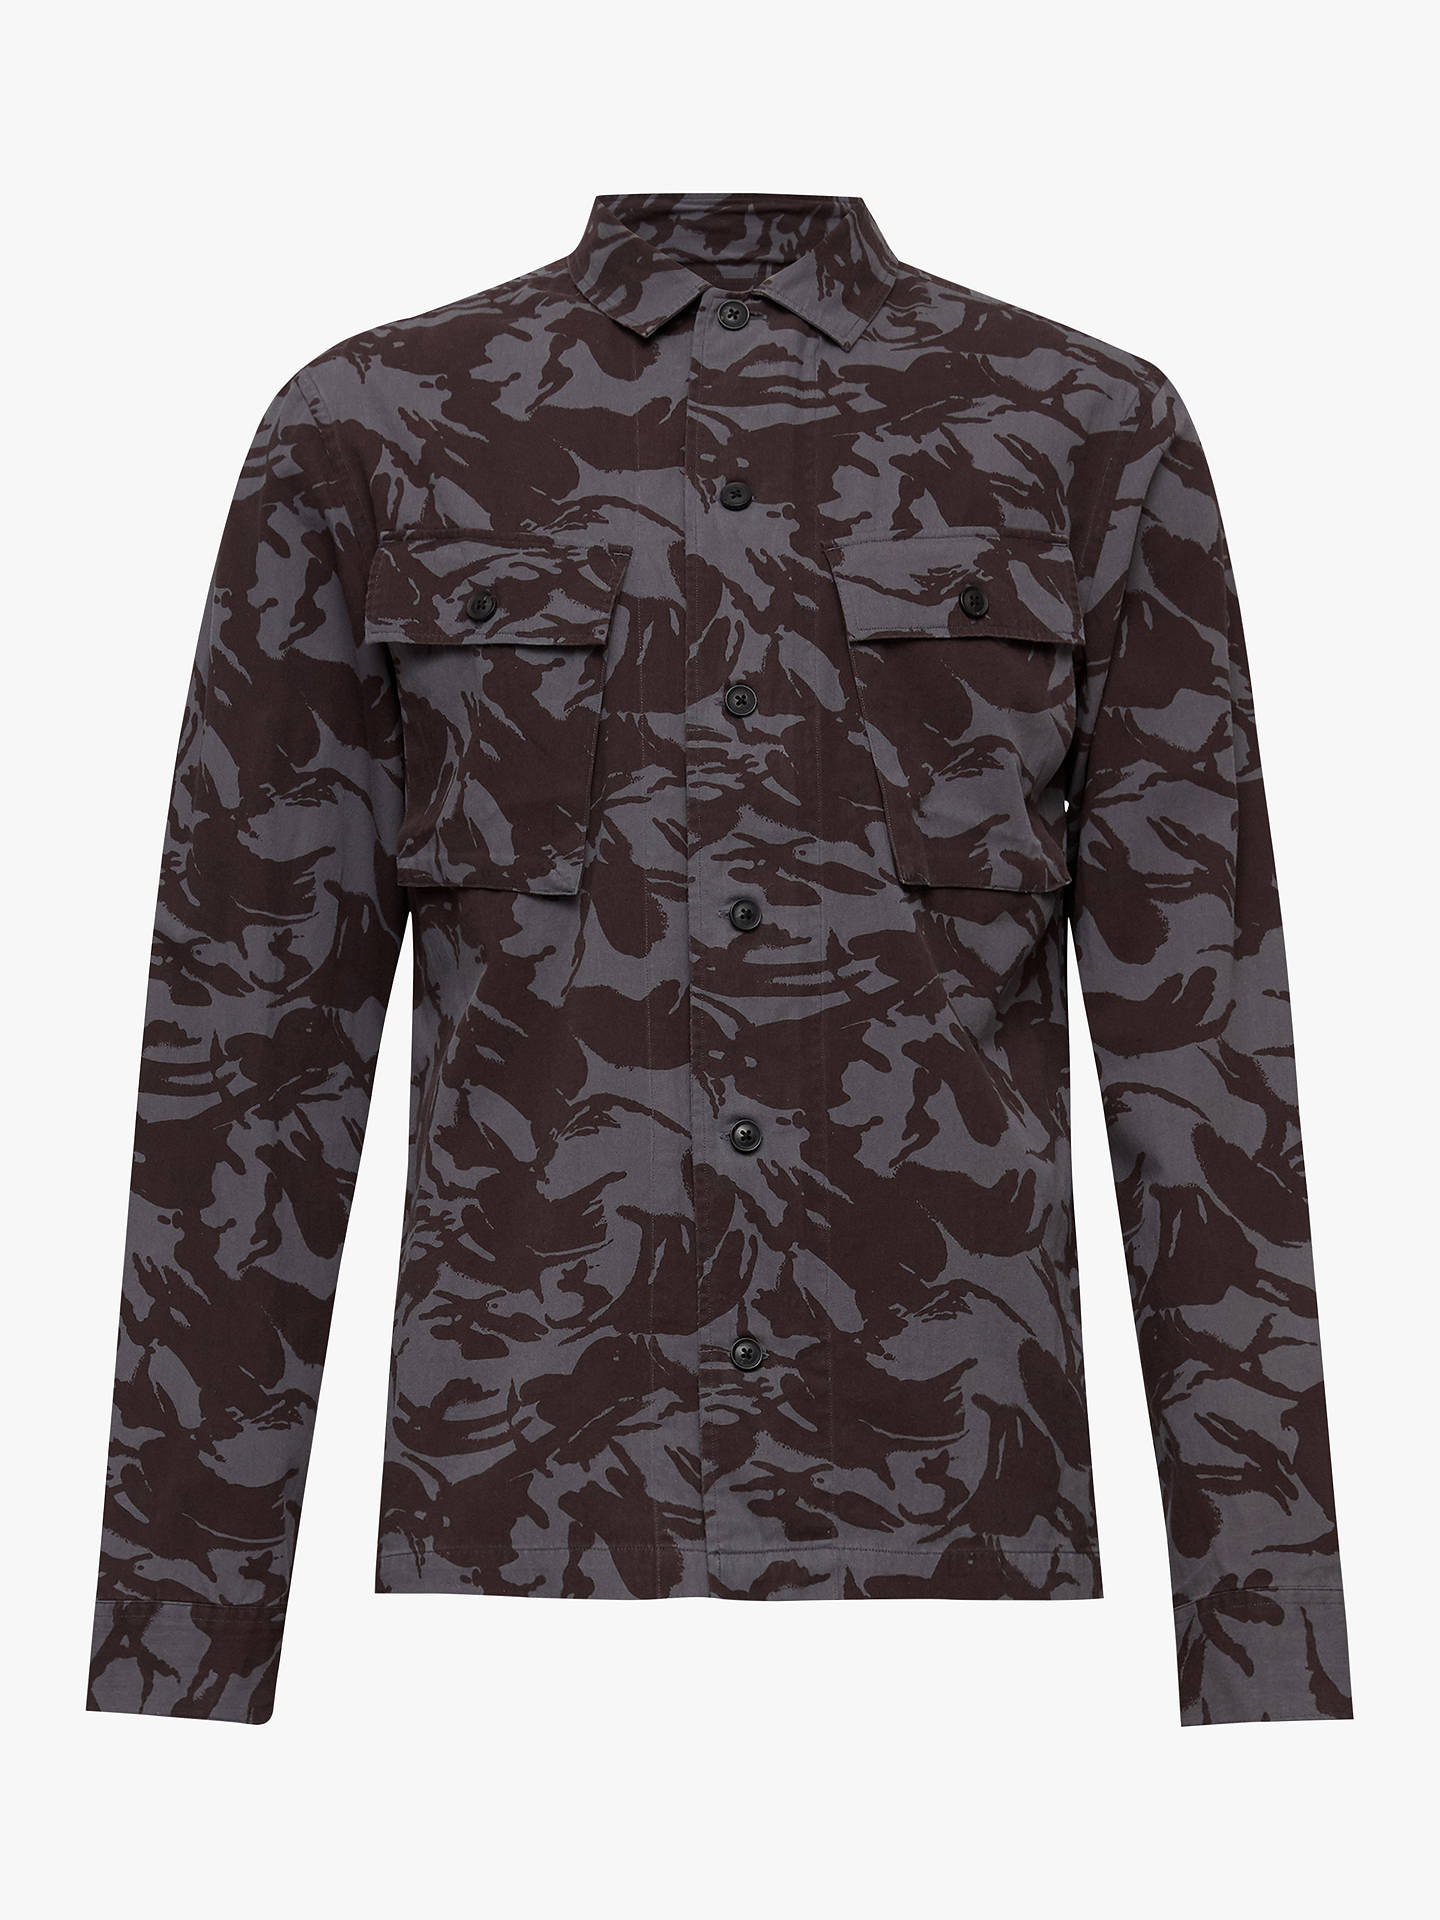 Buy Allsaints Ordnance Long Sleeve Camo Shirt, Navy, S Online at johnlewis.com